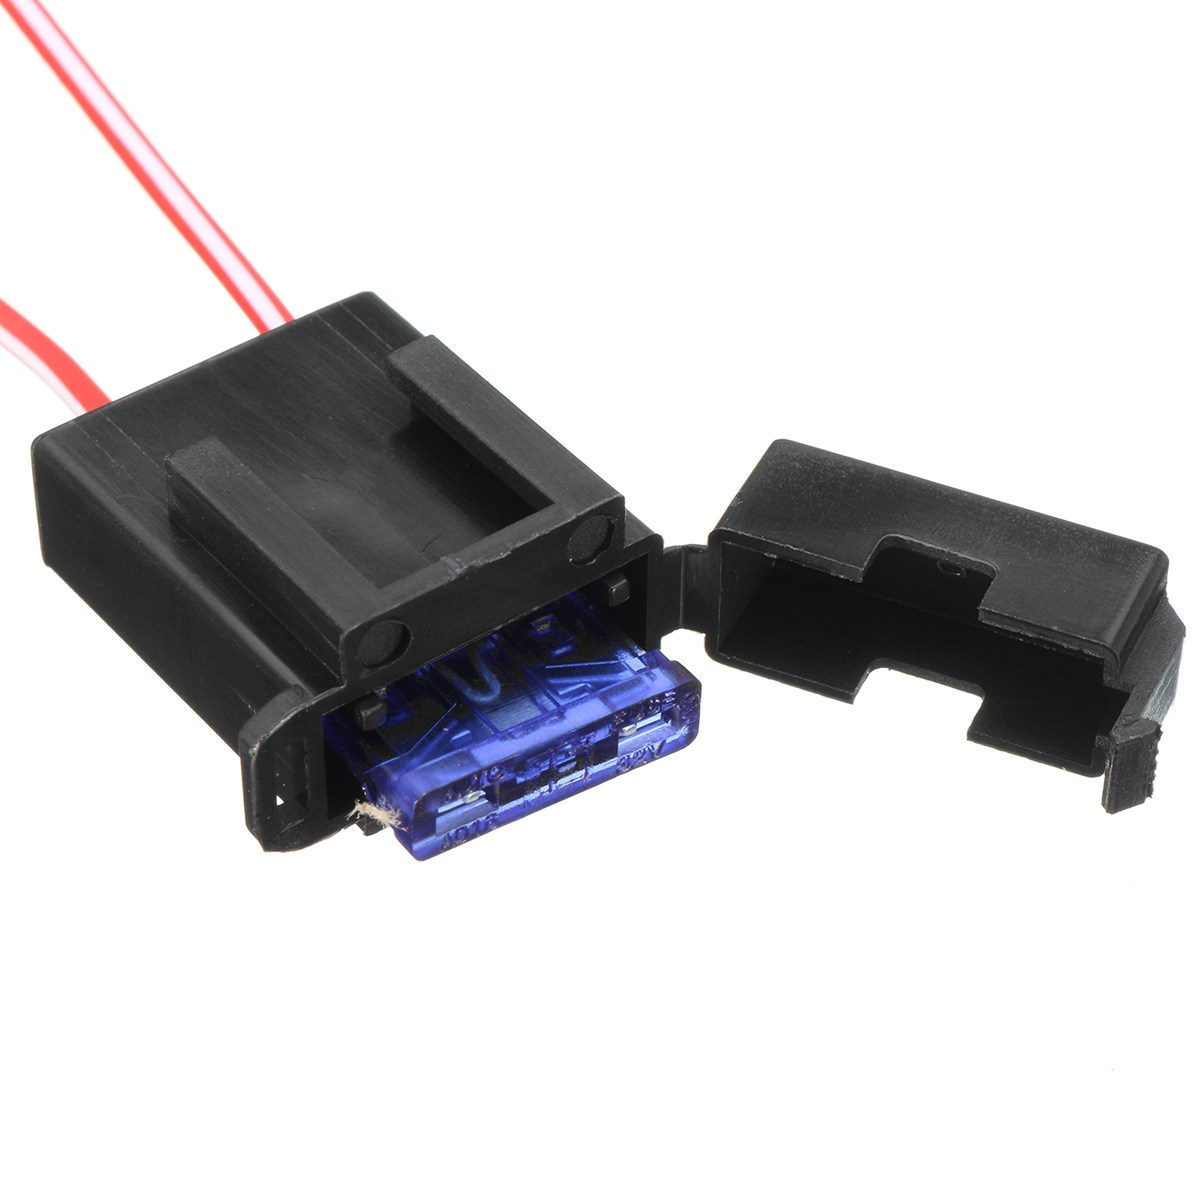 H11 Fog Light Wiring Harness Sockets Wire Led Indicators Switch Ford Automotive Relay For Honda Nissan Acura In From Automobiles Motorcycles On